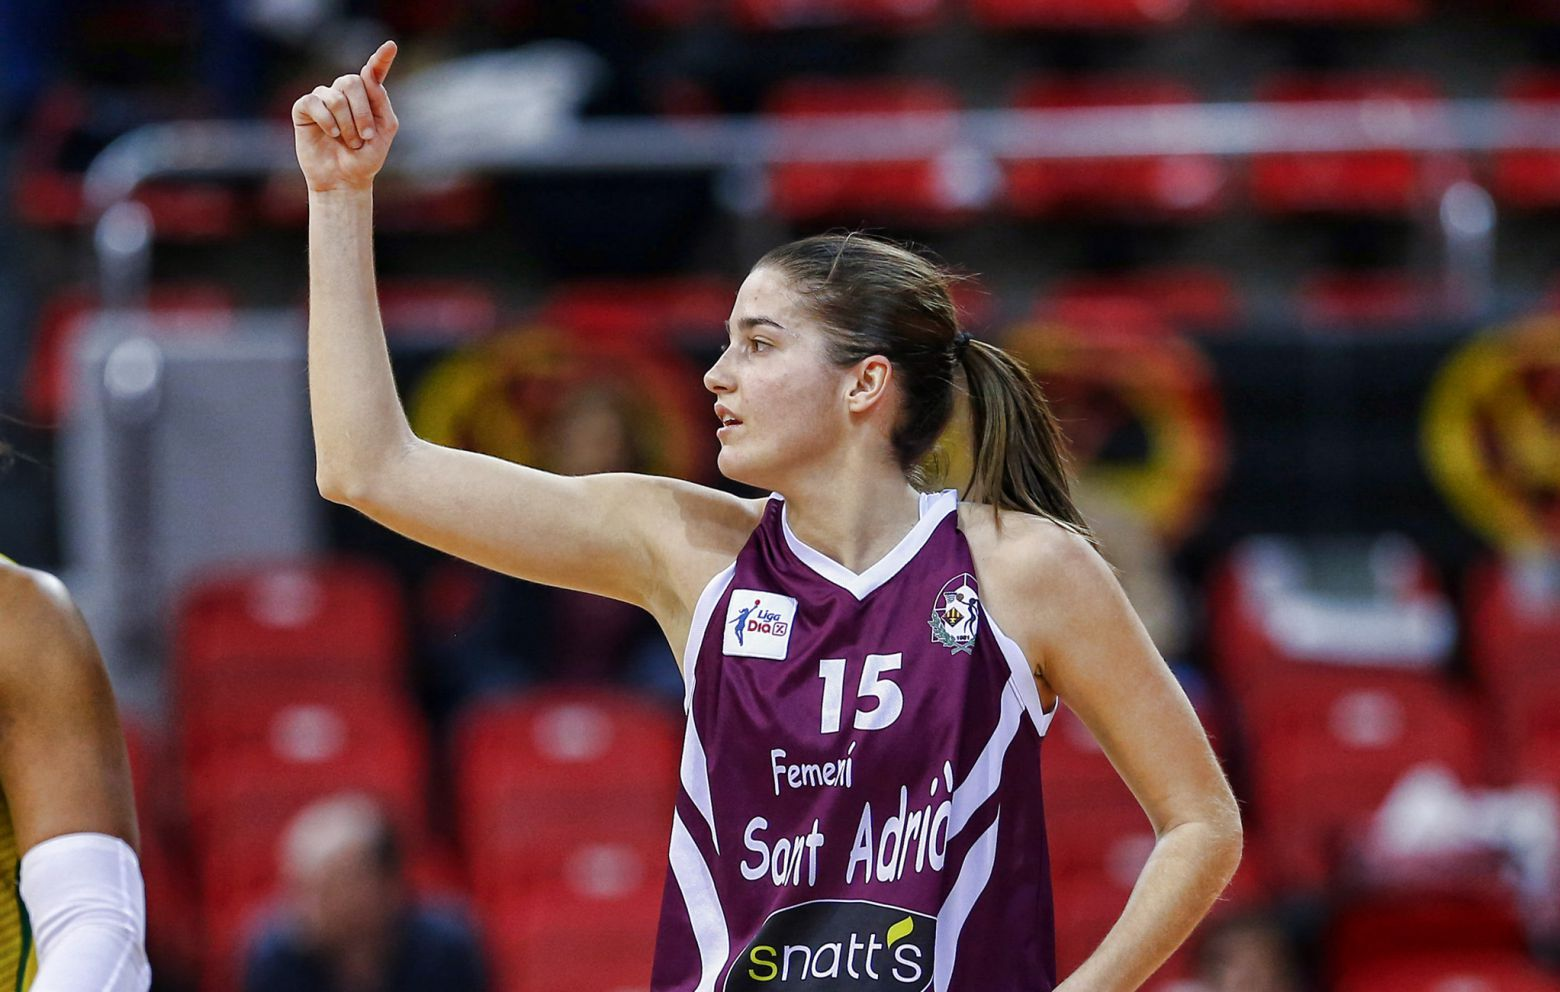 MIREIA VILA has re-signed with Femení Sant Adria